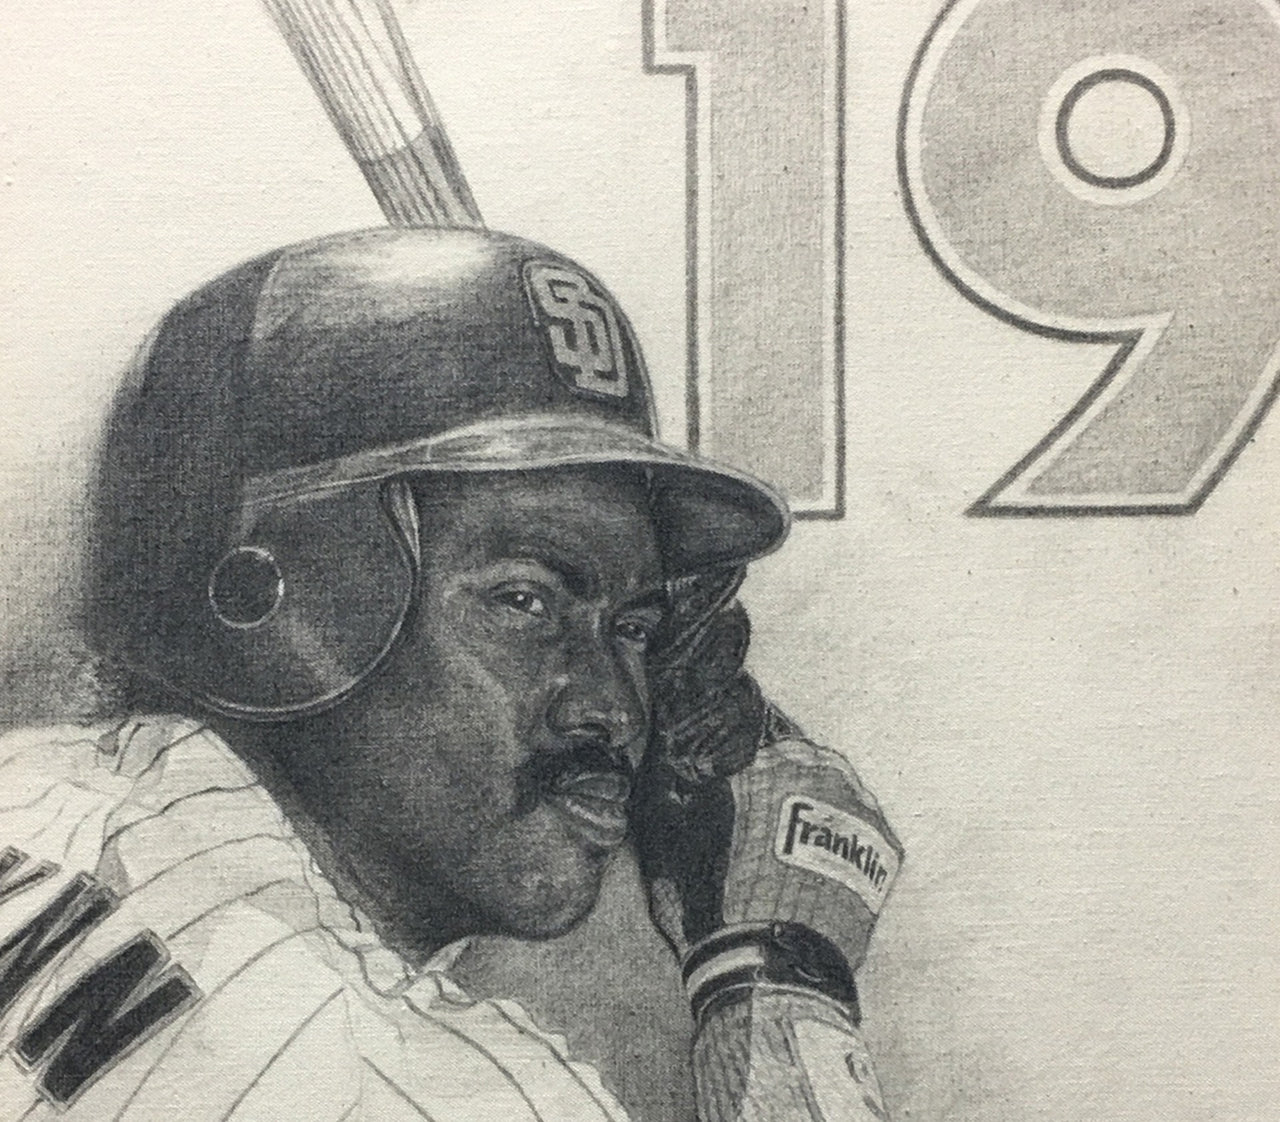 Tony Gwynn - Graphite on Canvas 16x20